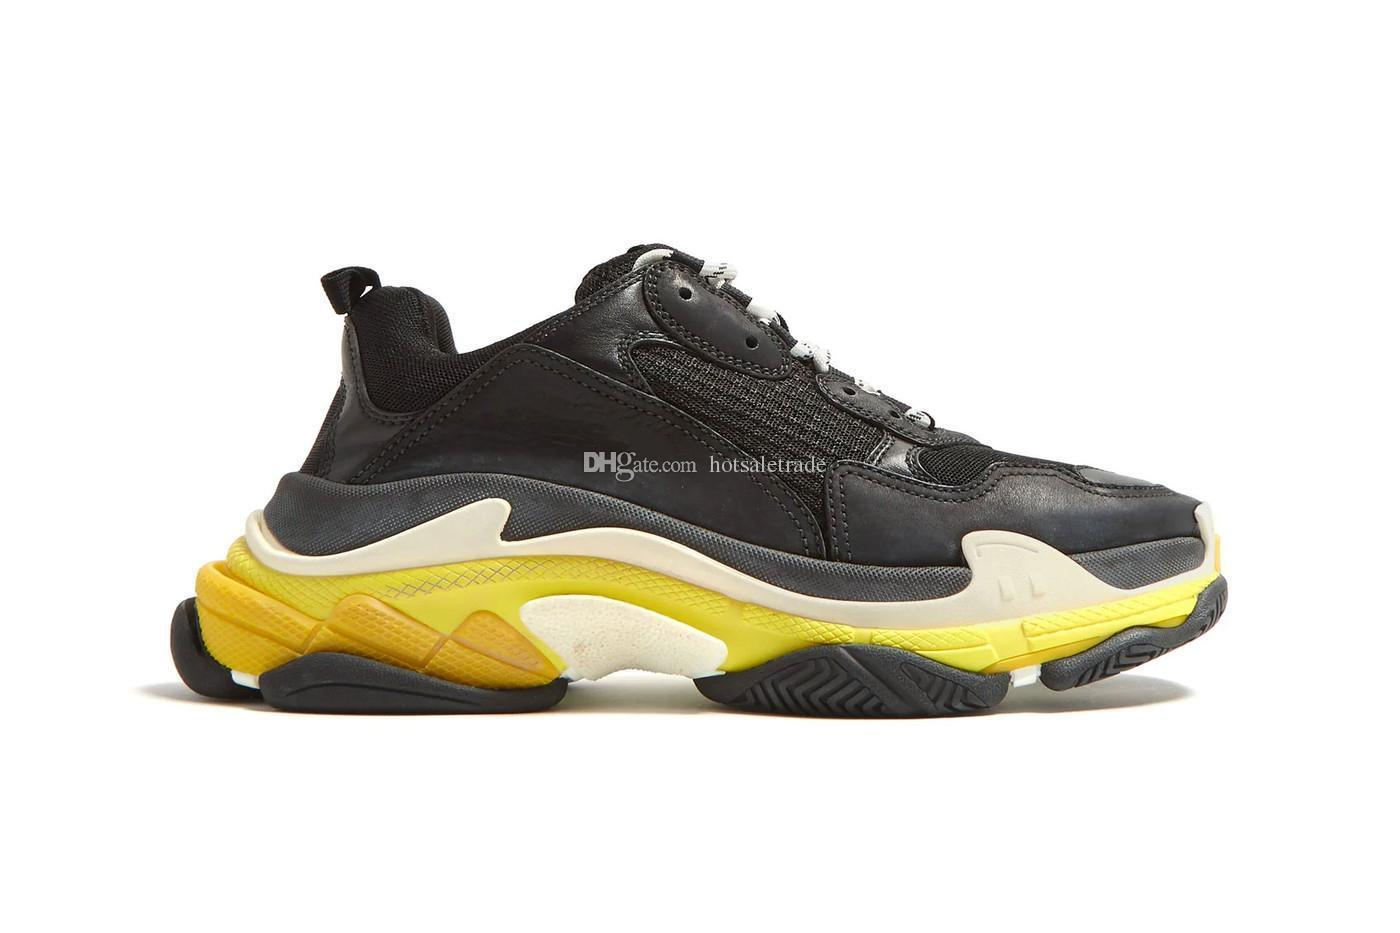 Triple Designer S Black/Yellow Casual Shoes Men popular chunky sneaker Men Women Triple S Trainers with translucent soles